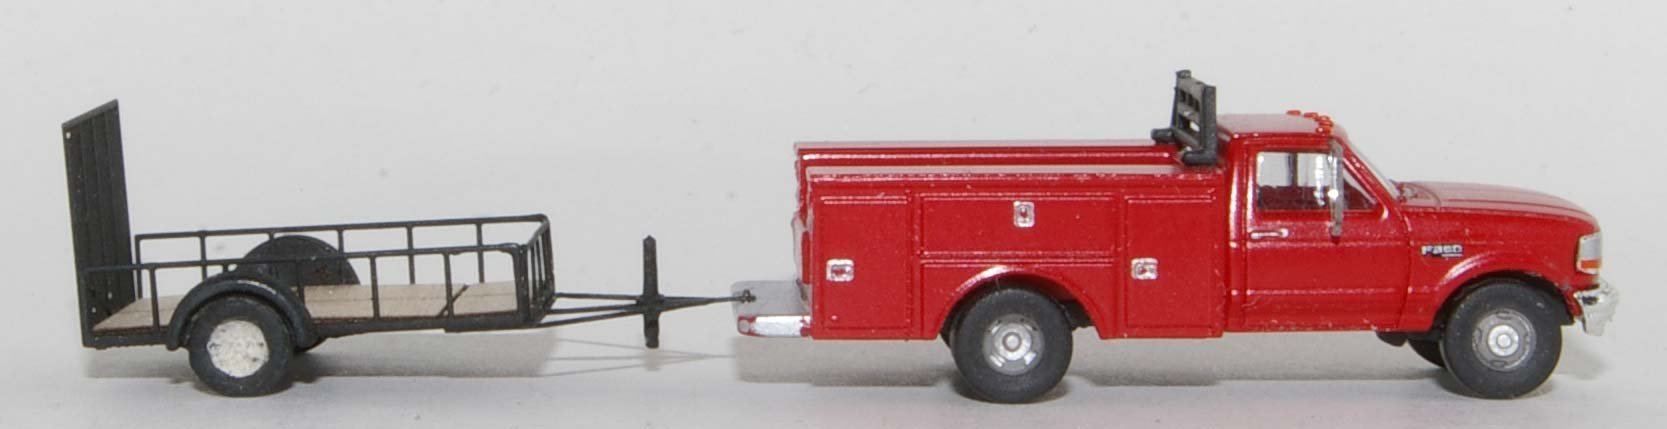 RPS F-350 with Showcase Minatures Trailer-1